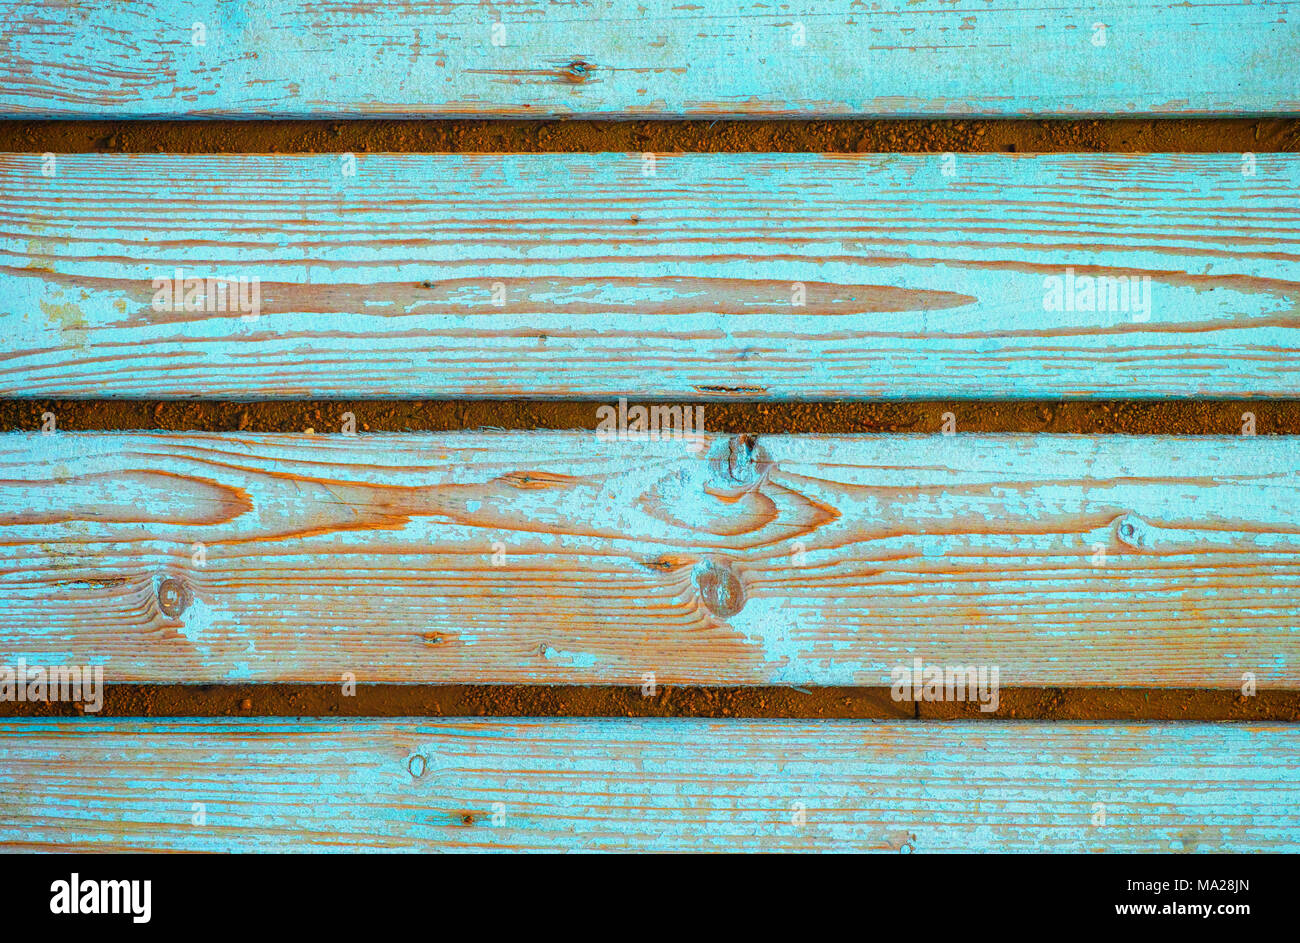 Background of blue wooden planks. Full frame. - Stock Image